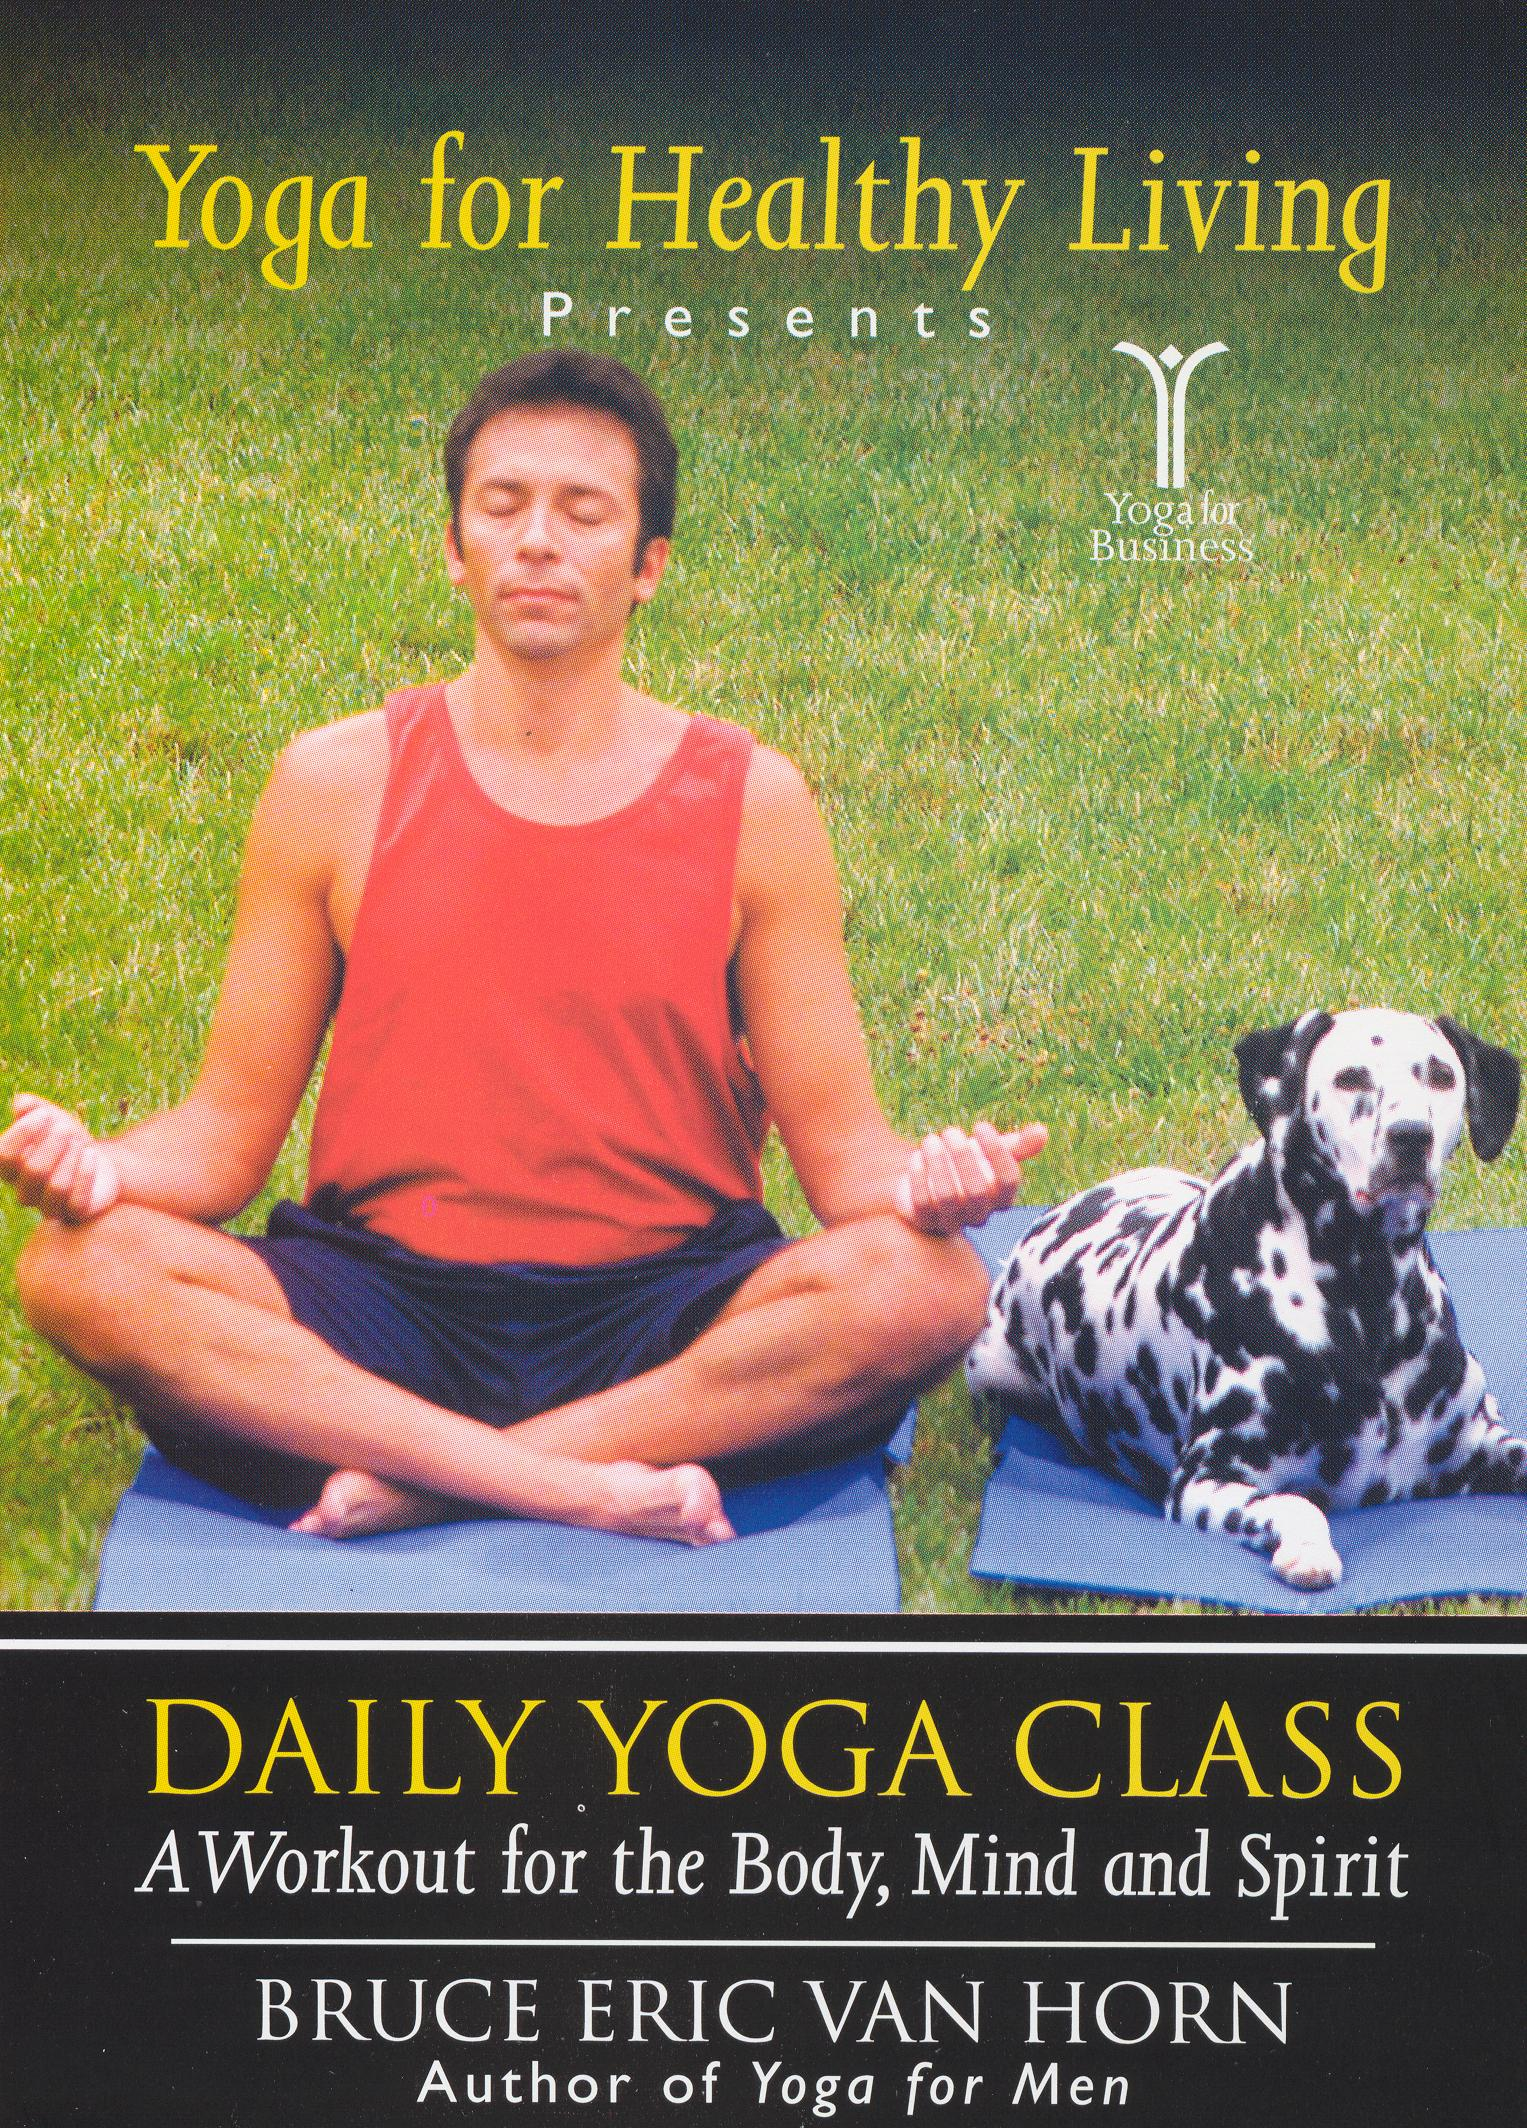 Yoga For Healthy Living Presents: Daily Yoga Class